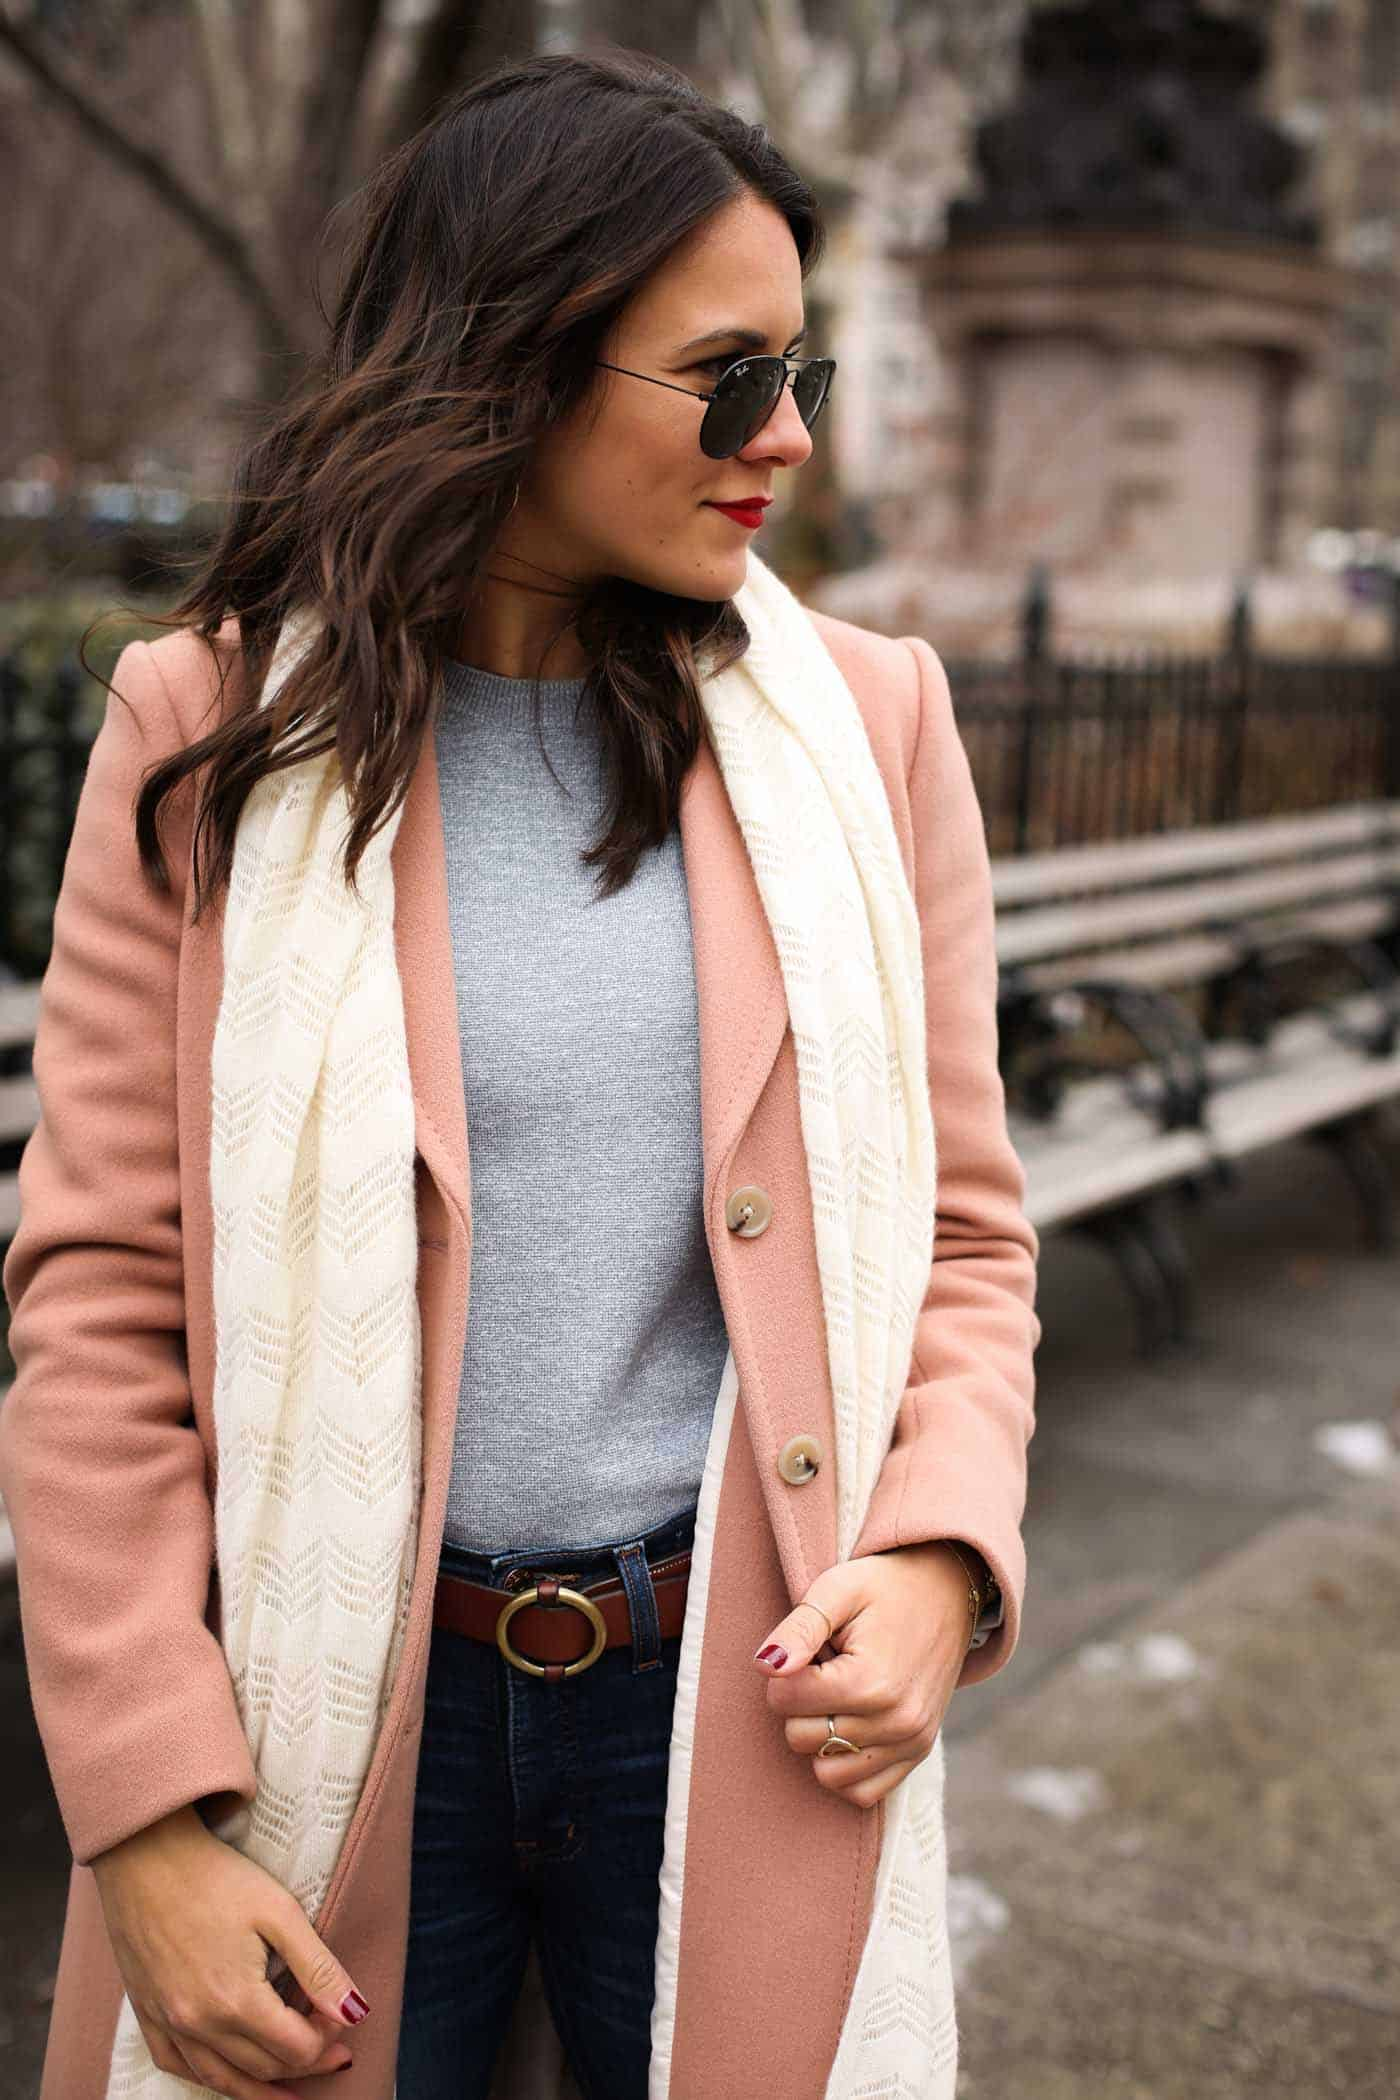 pastel winter outfit, new york city outfit ideas, new york city photos - My Style Vita